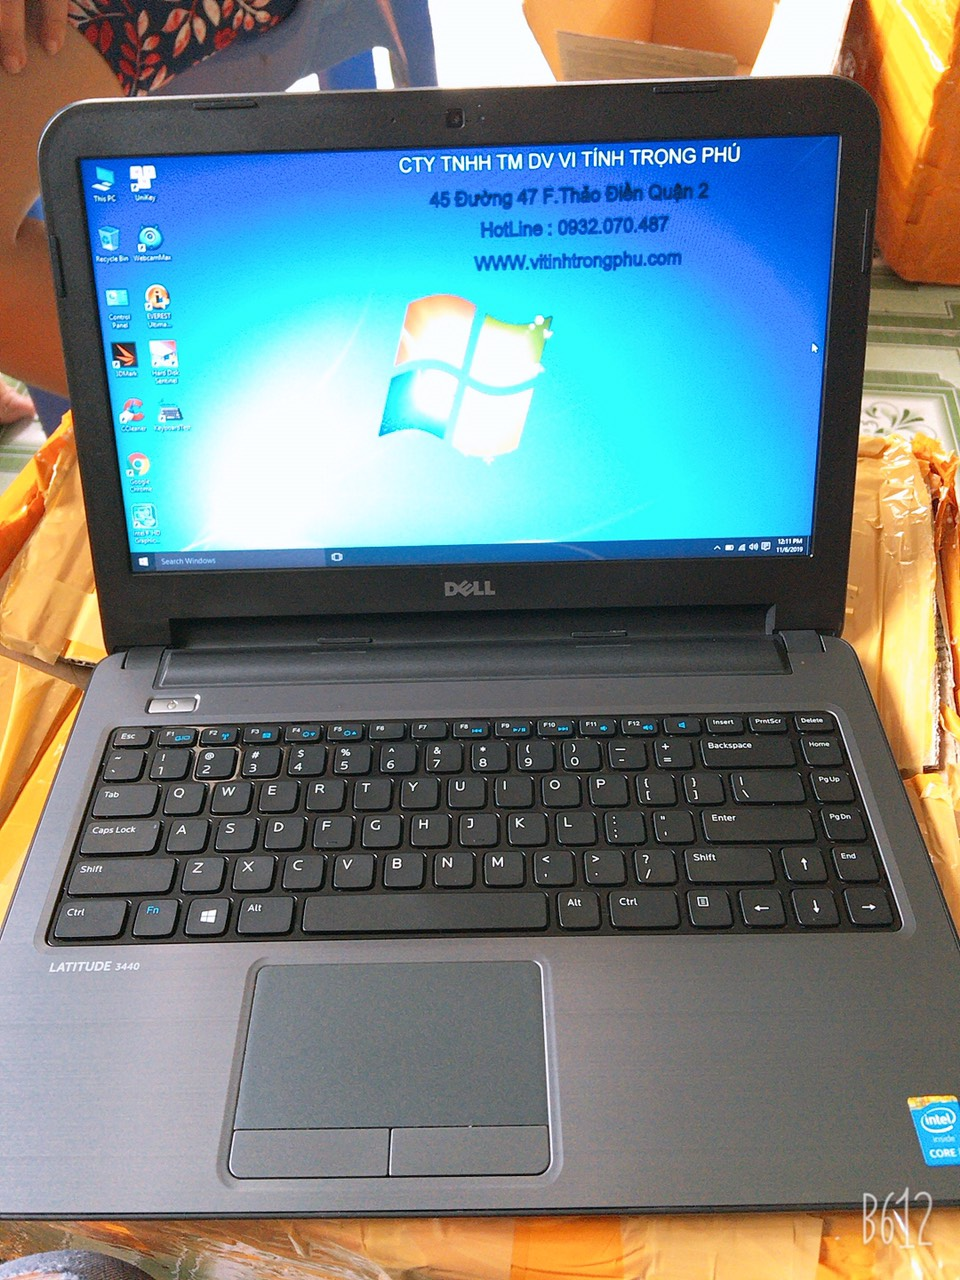 #Laptop #Dell #Latitude_3440 Core I3